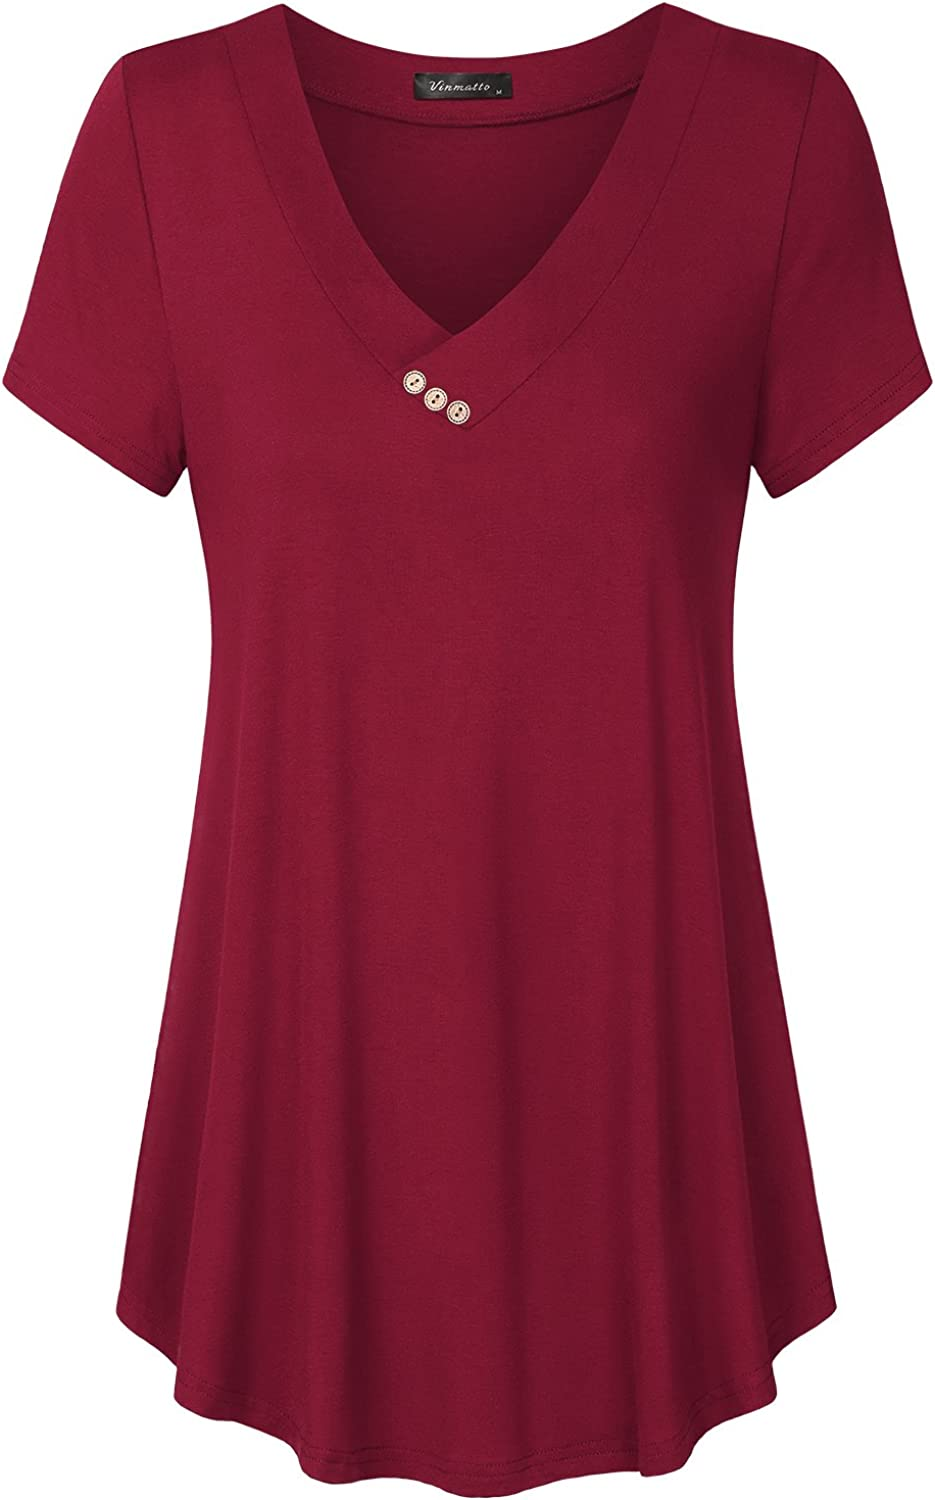 Vinmatto Women's Summer Short Easy-to-use Sleeve V Max 71% OFF Flowy Size Neck Tuni Plus